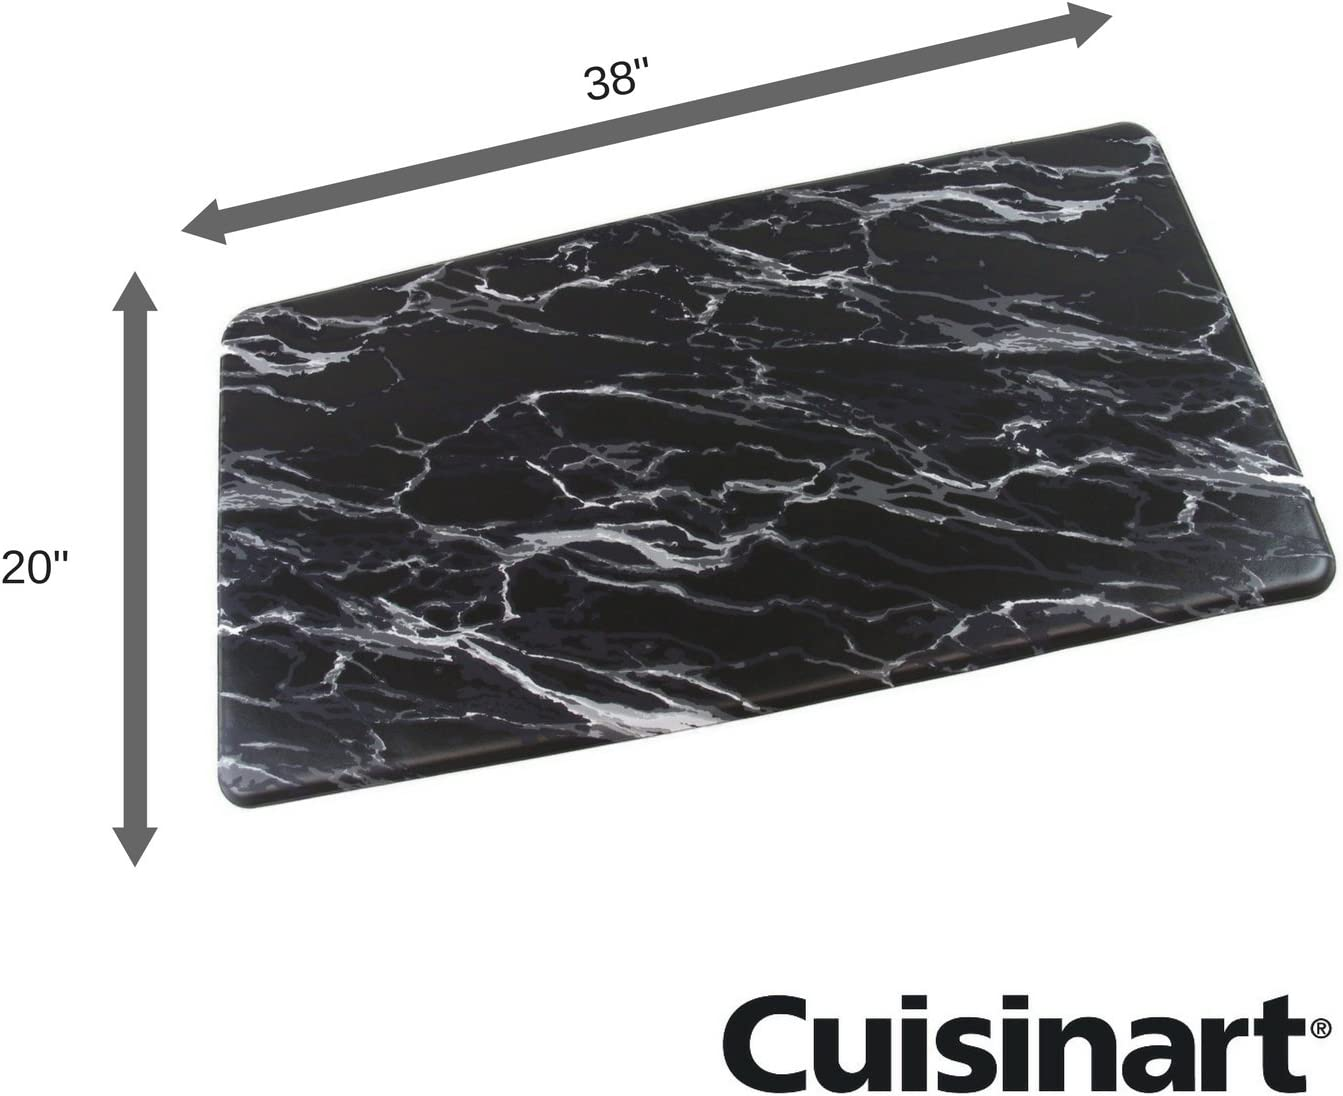 Black Non Slip Kitchen Mat By Cuisinart Marble Inspired Chef Mat Comfy Floor Pad Helps Eliminate Standing Back And Foot Pain 20 X38 Pure Comfort Kitchen Rug Anti Fatigue Comfort Mats Kitchen Dining